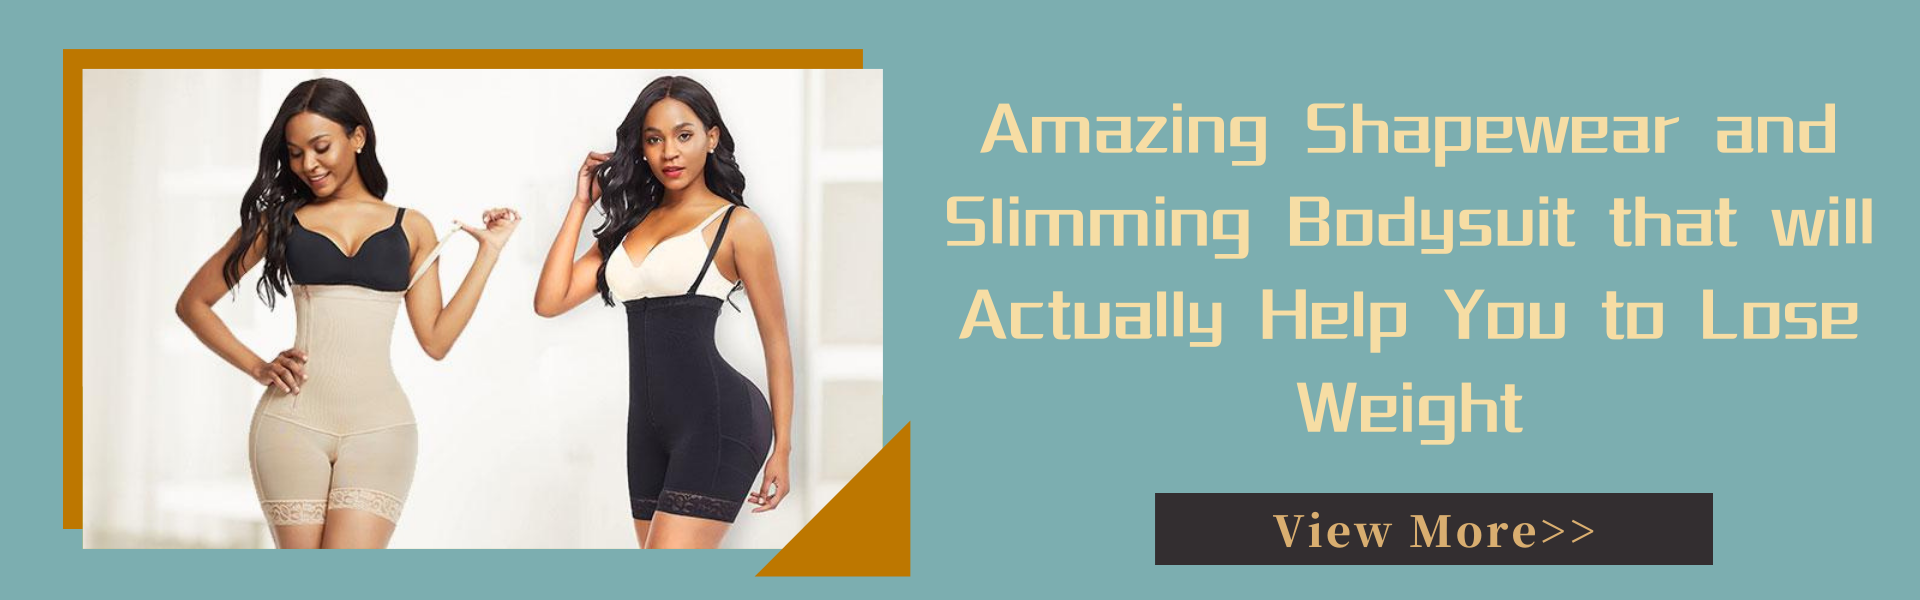 Amazing Shapewear and Slimming Bodysuit that will Actually Help You to Lose Weight